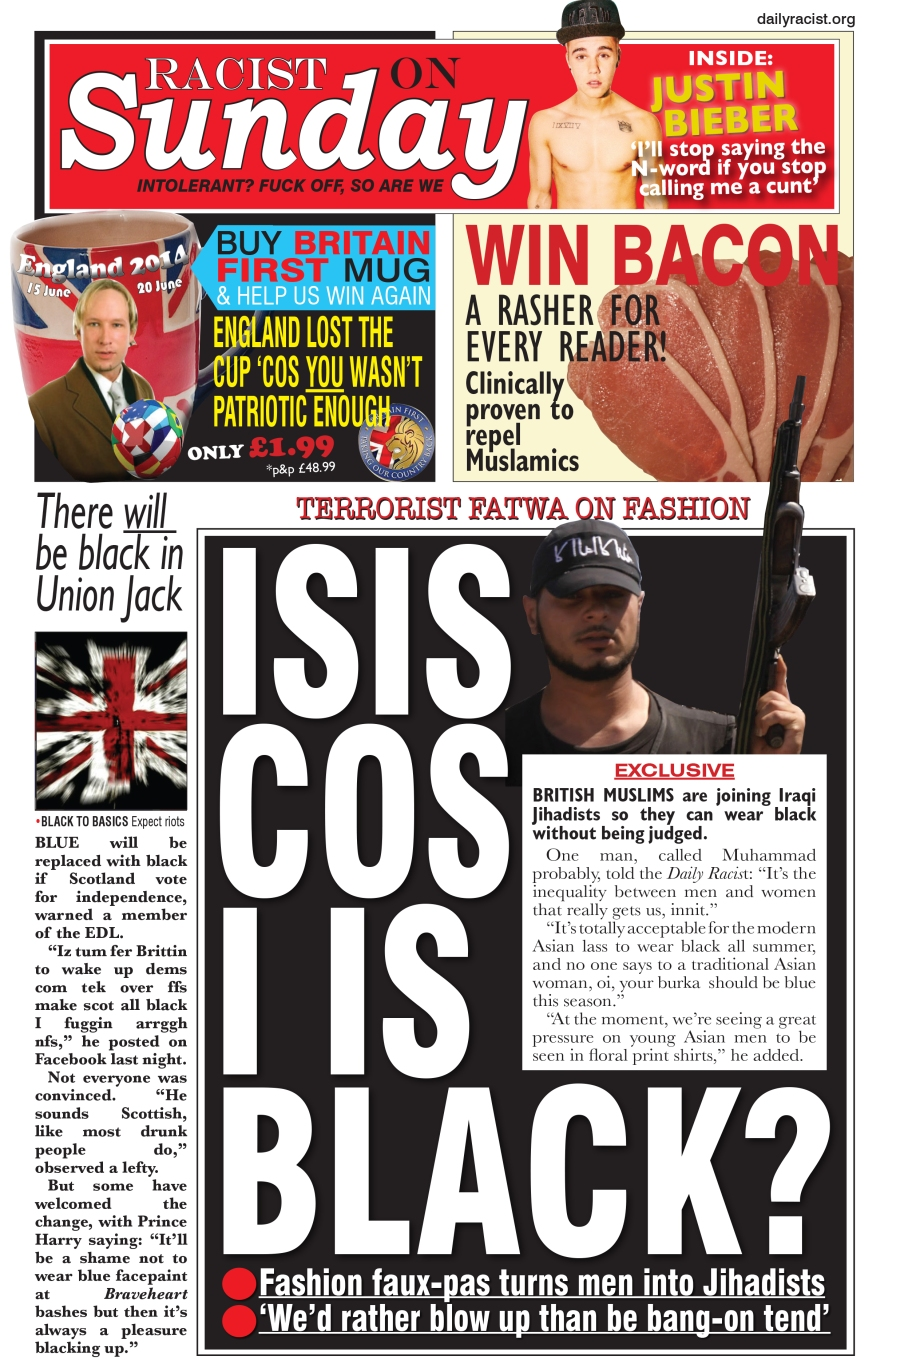 WEEKEND SPECIAL: England footie shame, ISIS the new black, win Britain First mug, Justin Bieber looks like a cock